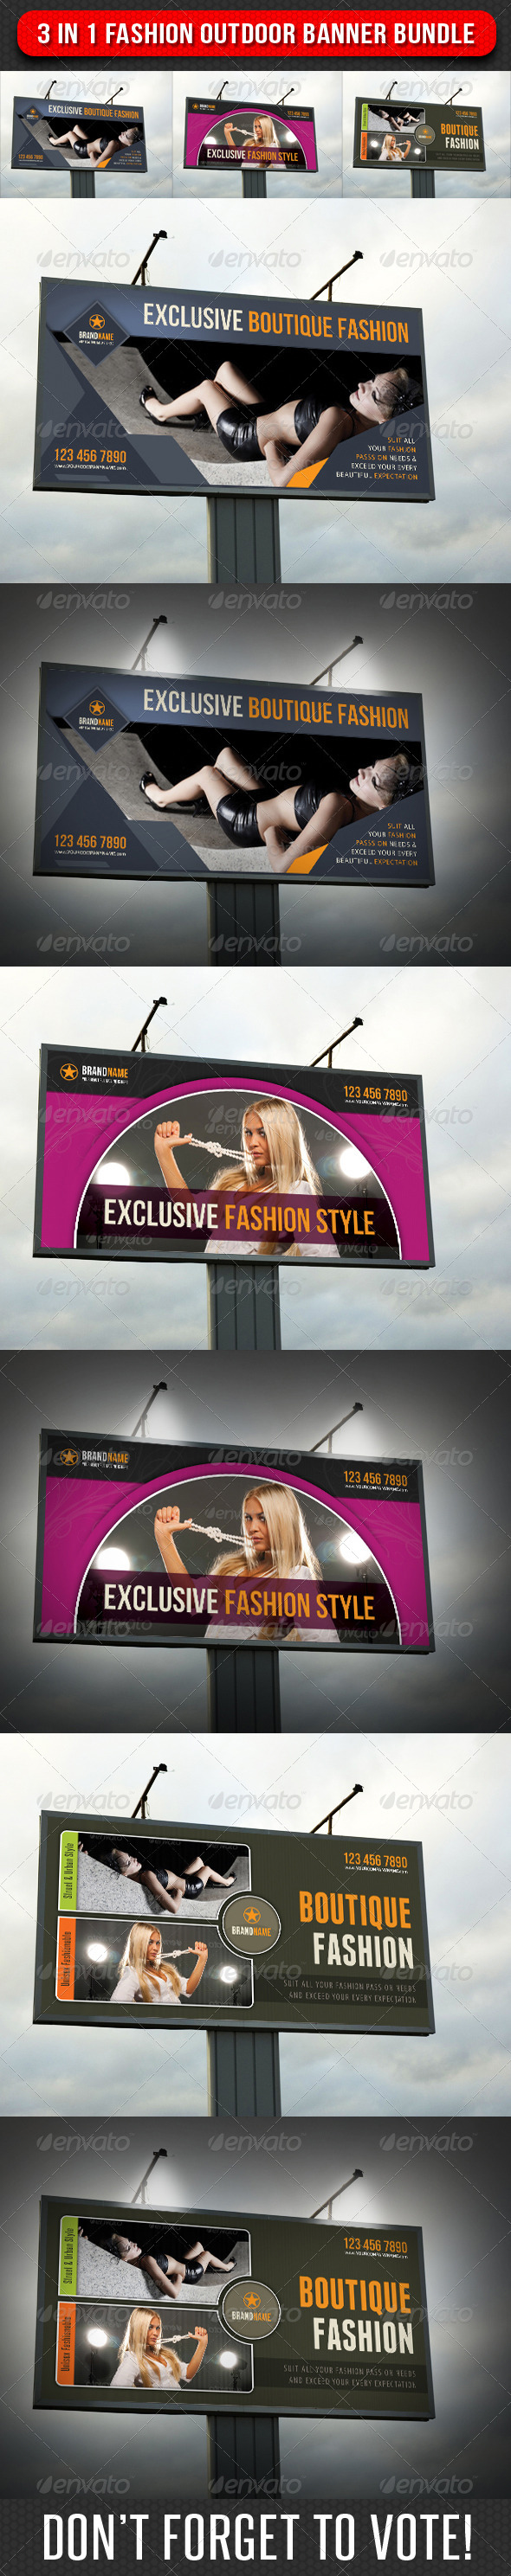 GraphicRiver 3 in 1 Fashion Outdoor Banner Bundle 01 6747673